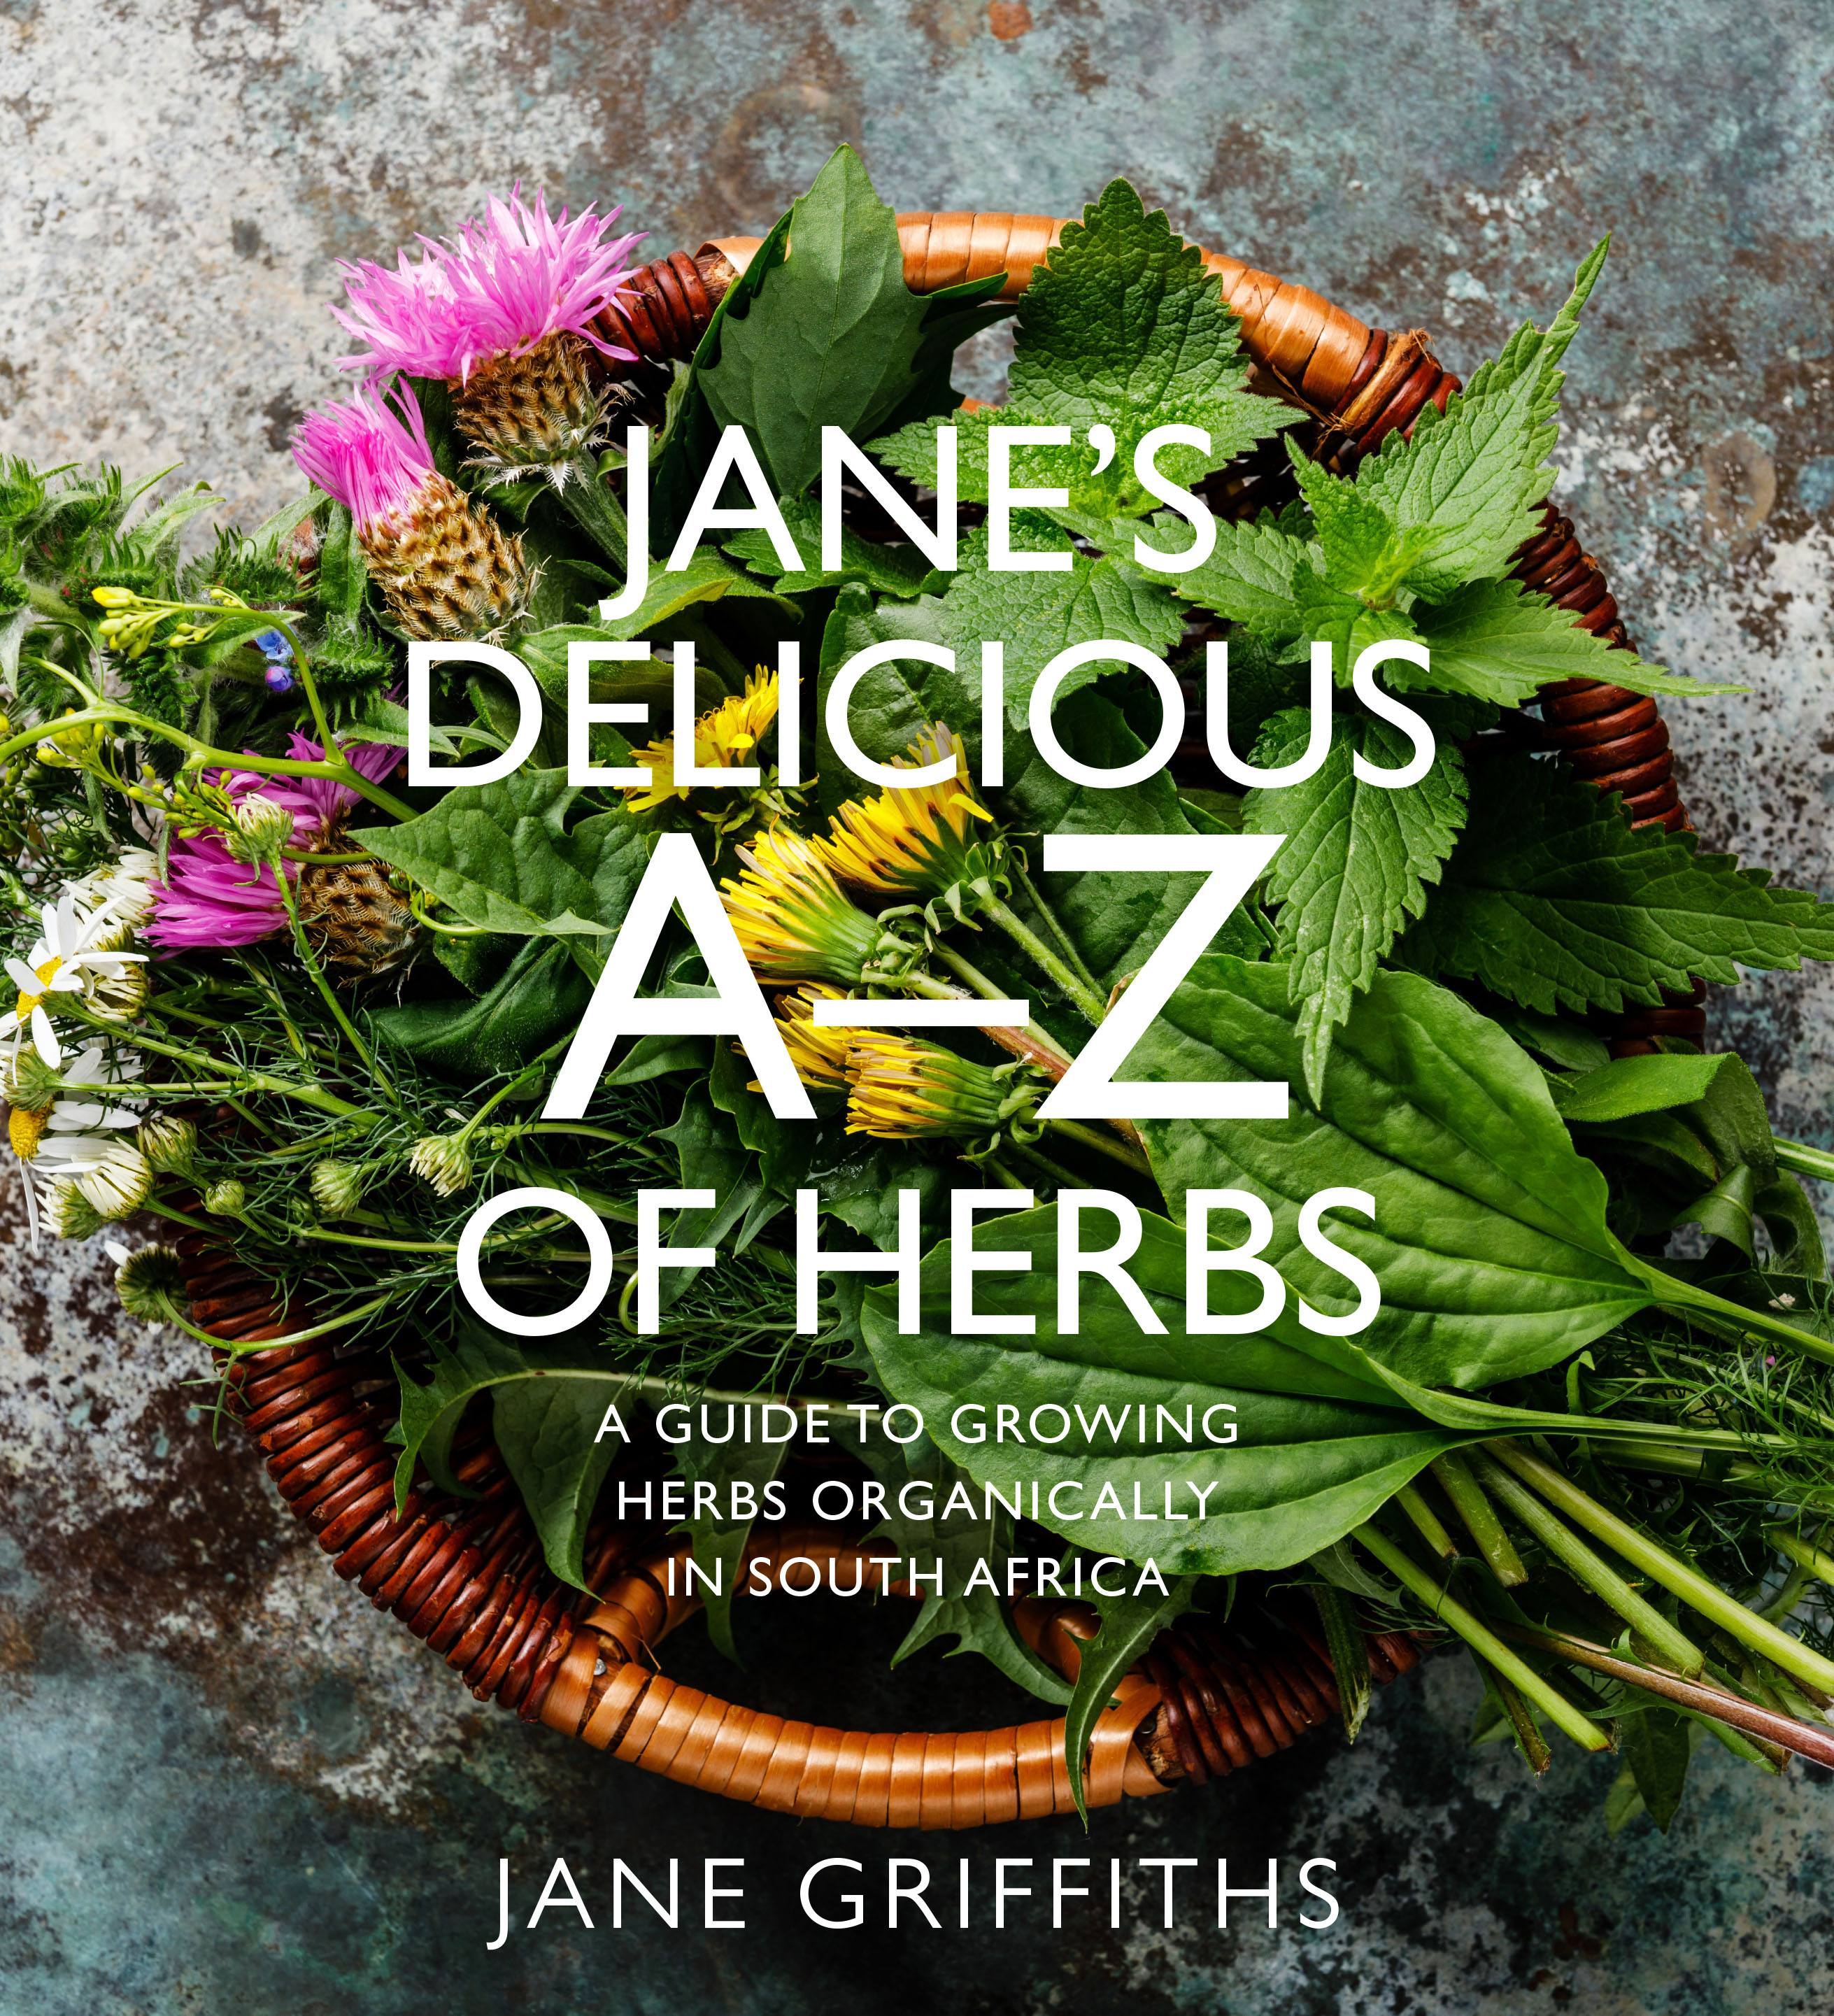 Janes delicious A-Z of herbs